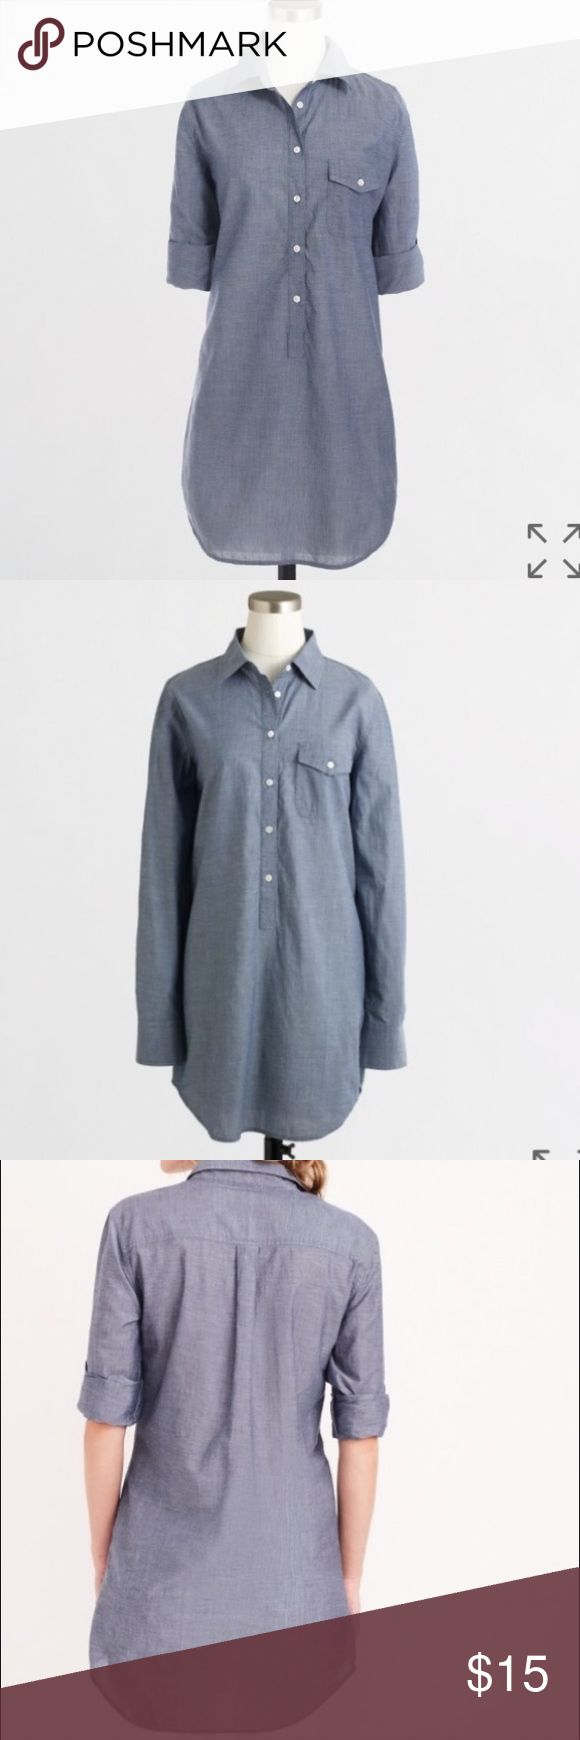 J crew factory popover tunic medium Like new! Worn twice. Sleeves can be rolled and buttoned to stay up or left down J. Crew Factory Tops Tunics